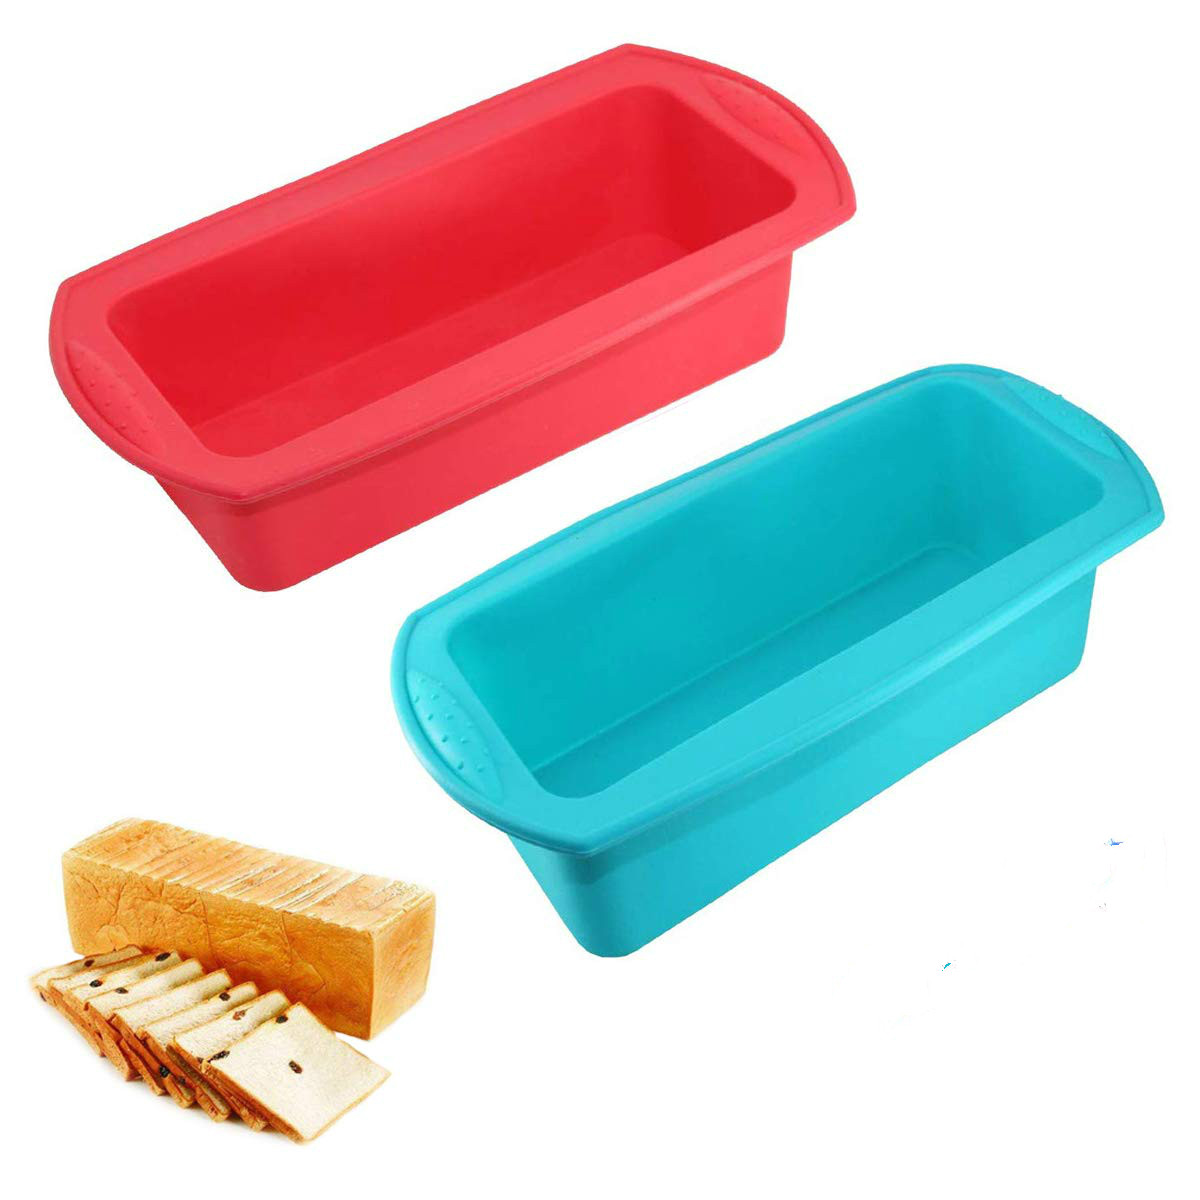 Silicone Bread Loaf Pan Non-Stick Baking Mould Cake Pan Pumpkin Bread Oven Baking Mold Microwave Dishwasher Safe image